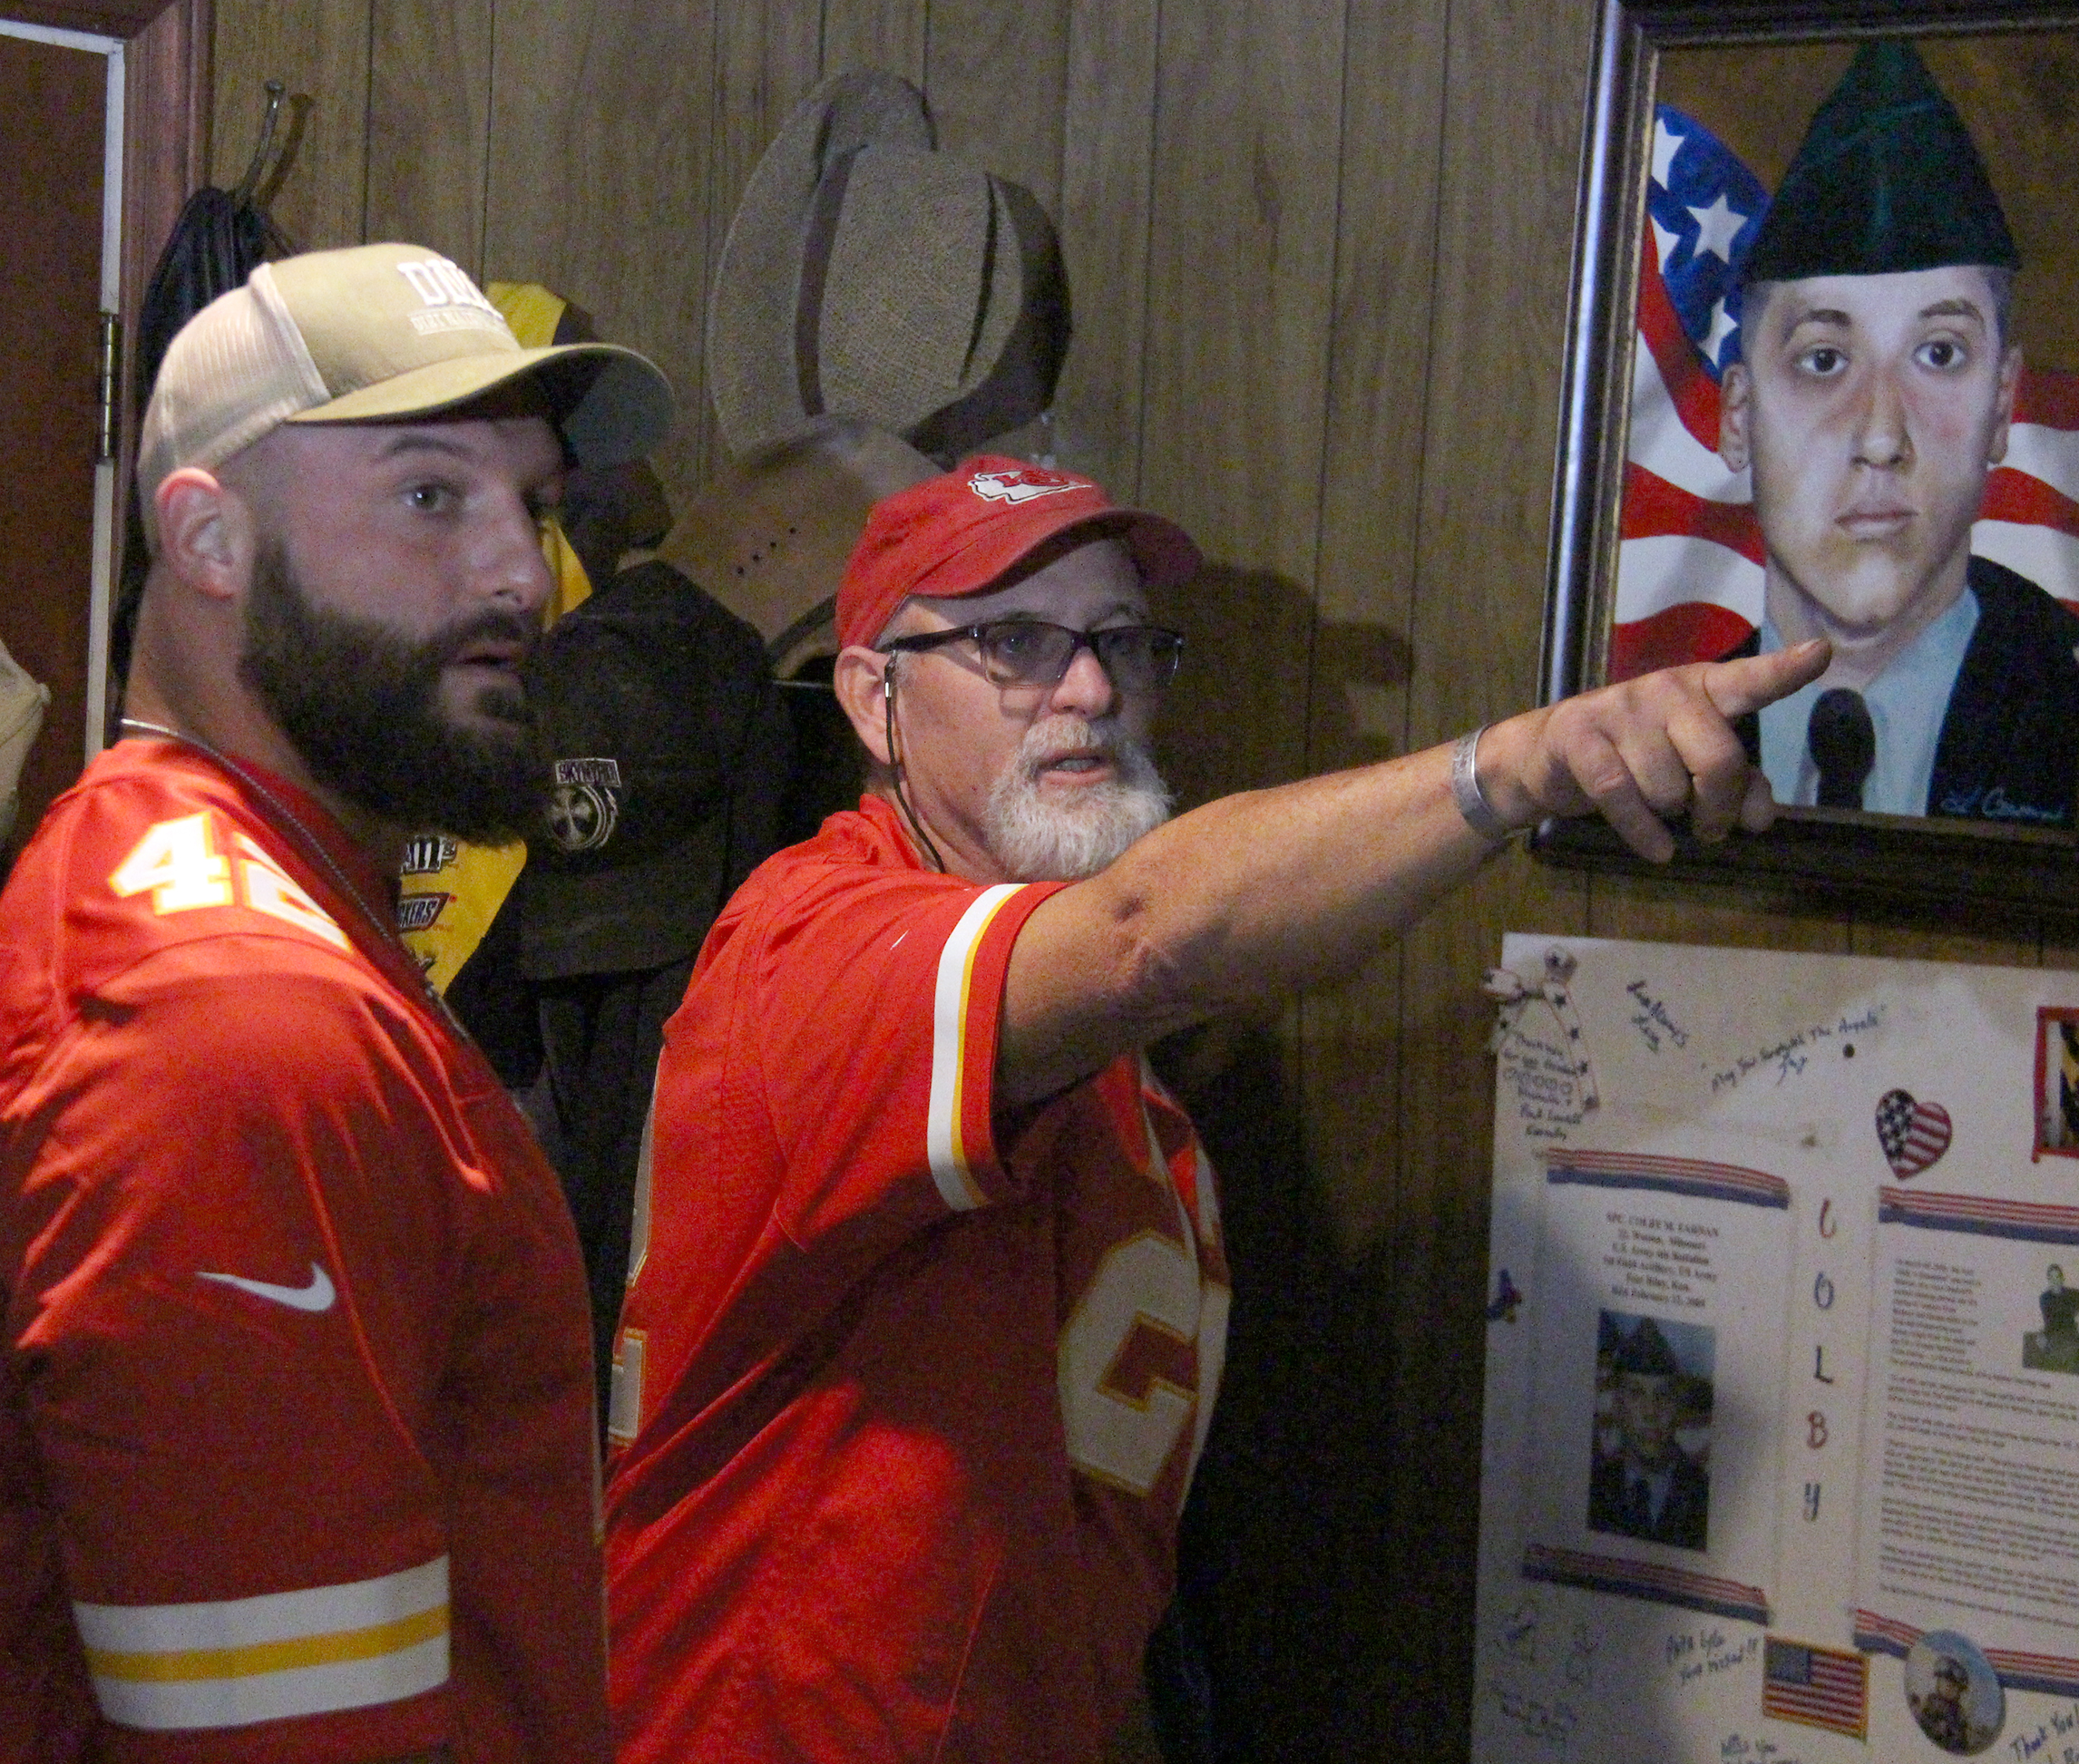 ROSS MARTIN/Citizen photo Patrick Farnan, right, points out a picture to Kansas City Chiefs fullback Anthony Sherman in the basement of the Farnans' home in Weston, Mo. Sherman visited the family Monday, Nov. 7 to present a special pregame-worn hooded sweatshirt he wore prior to a game with the Jacksonville Jaguars a day earlier. The shirt bore the name of SPC Colby Farnan, shown in the background of this photo in a portrait on the wall. He was killed in 2005 while serving in the United States Army.